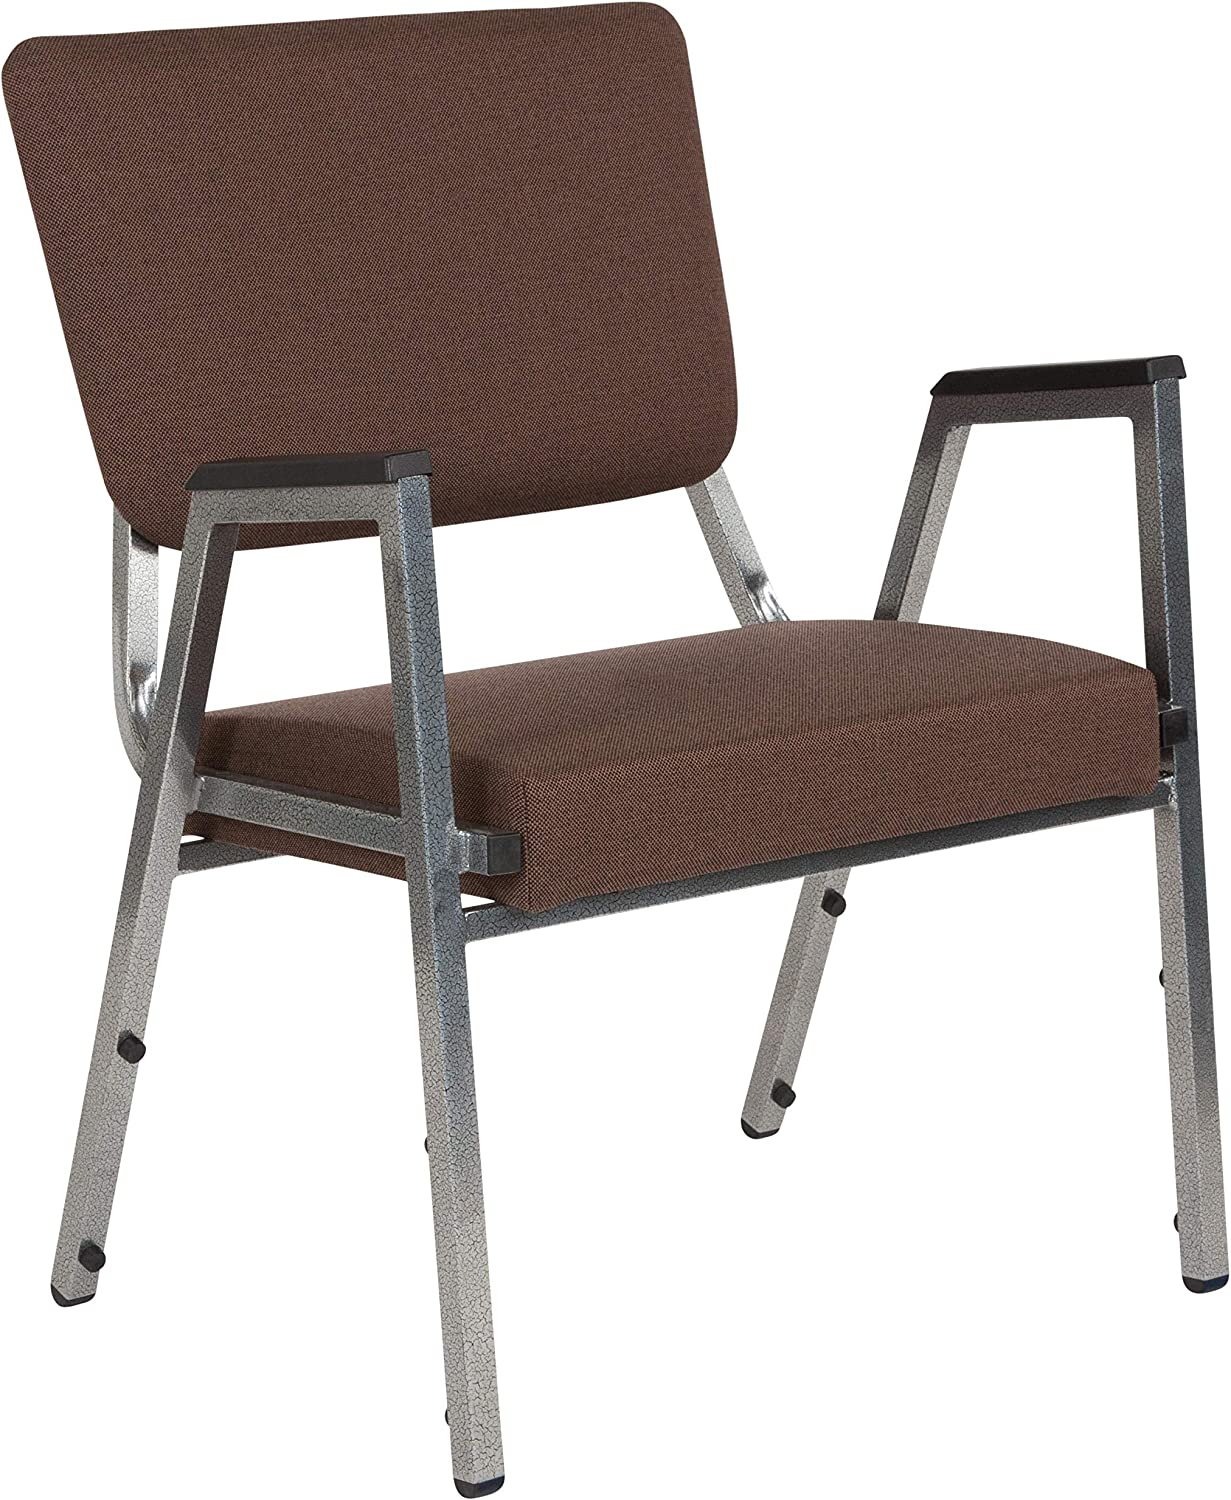 Flash Furniture HERCULES Series 1500 lb. Rated Brown Antimicrobial Fabric Bariatric Medical Reception Arm Chair with 3/4 Panel Back